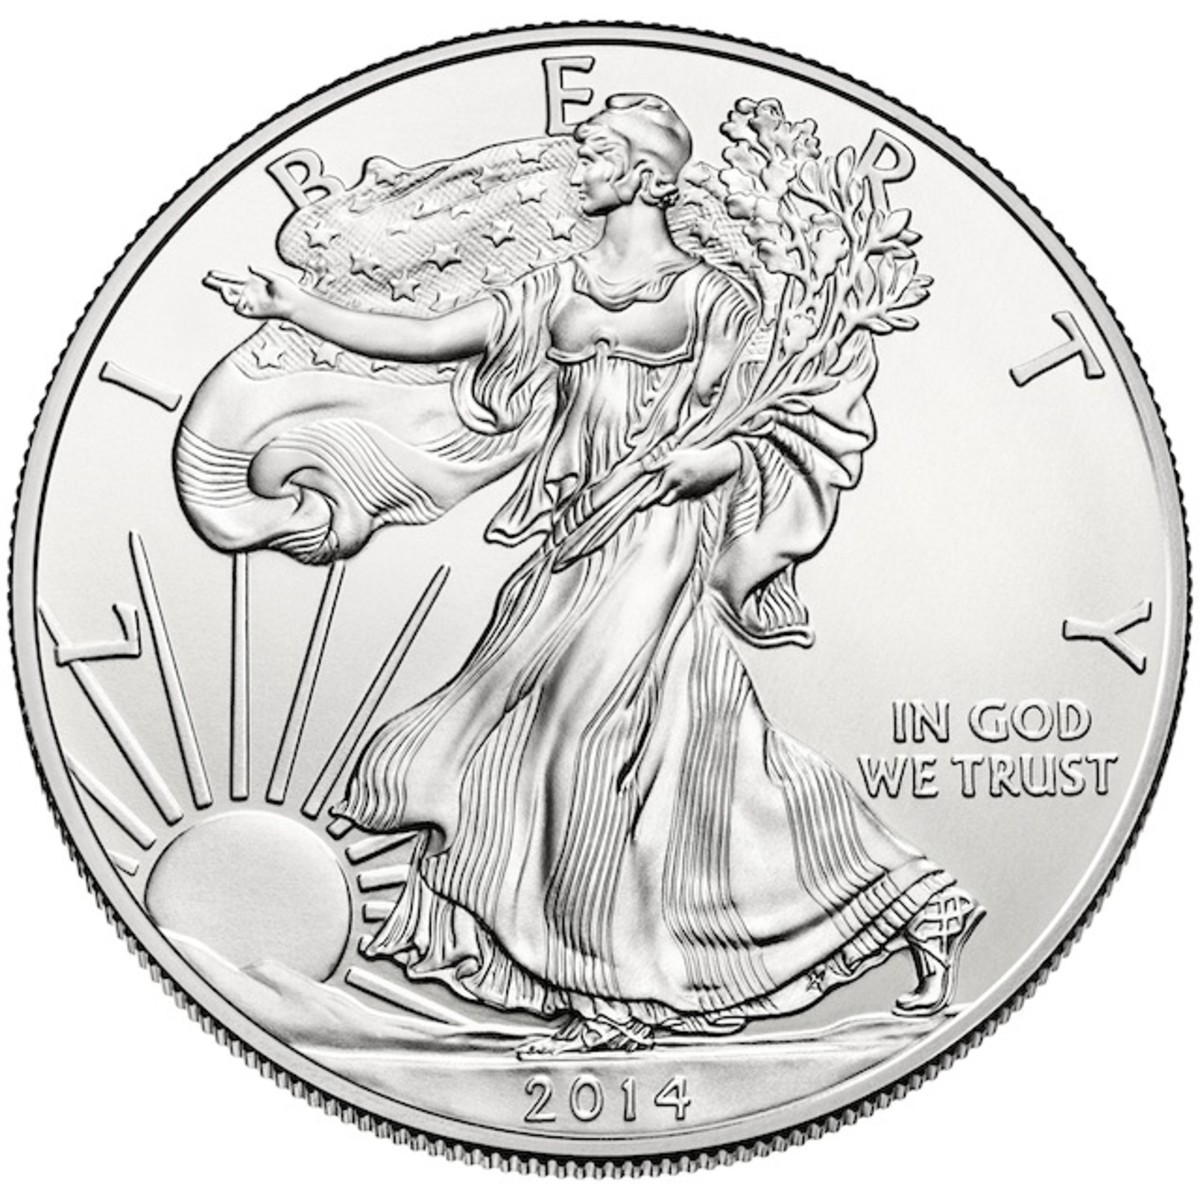 Authorized purchasers are now able to purchase any number of silver American Eagle bullion coins with rationing lifted